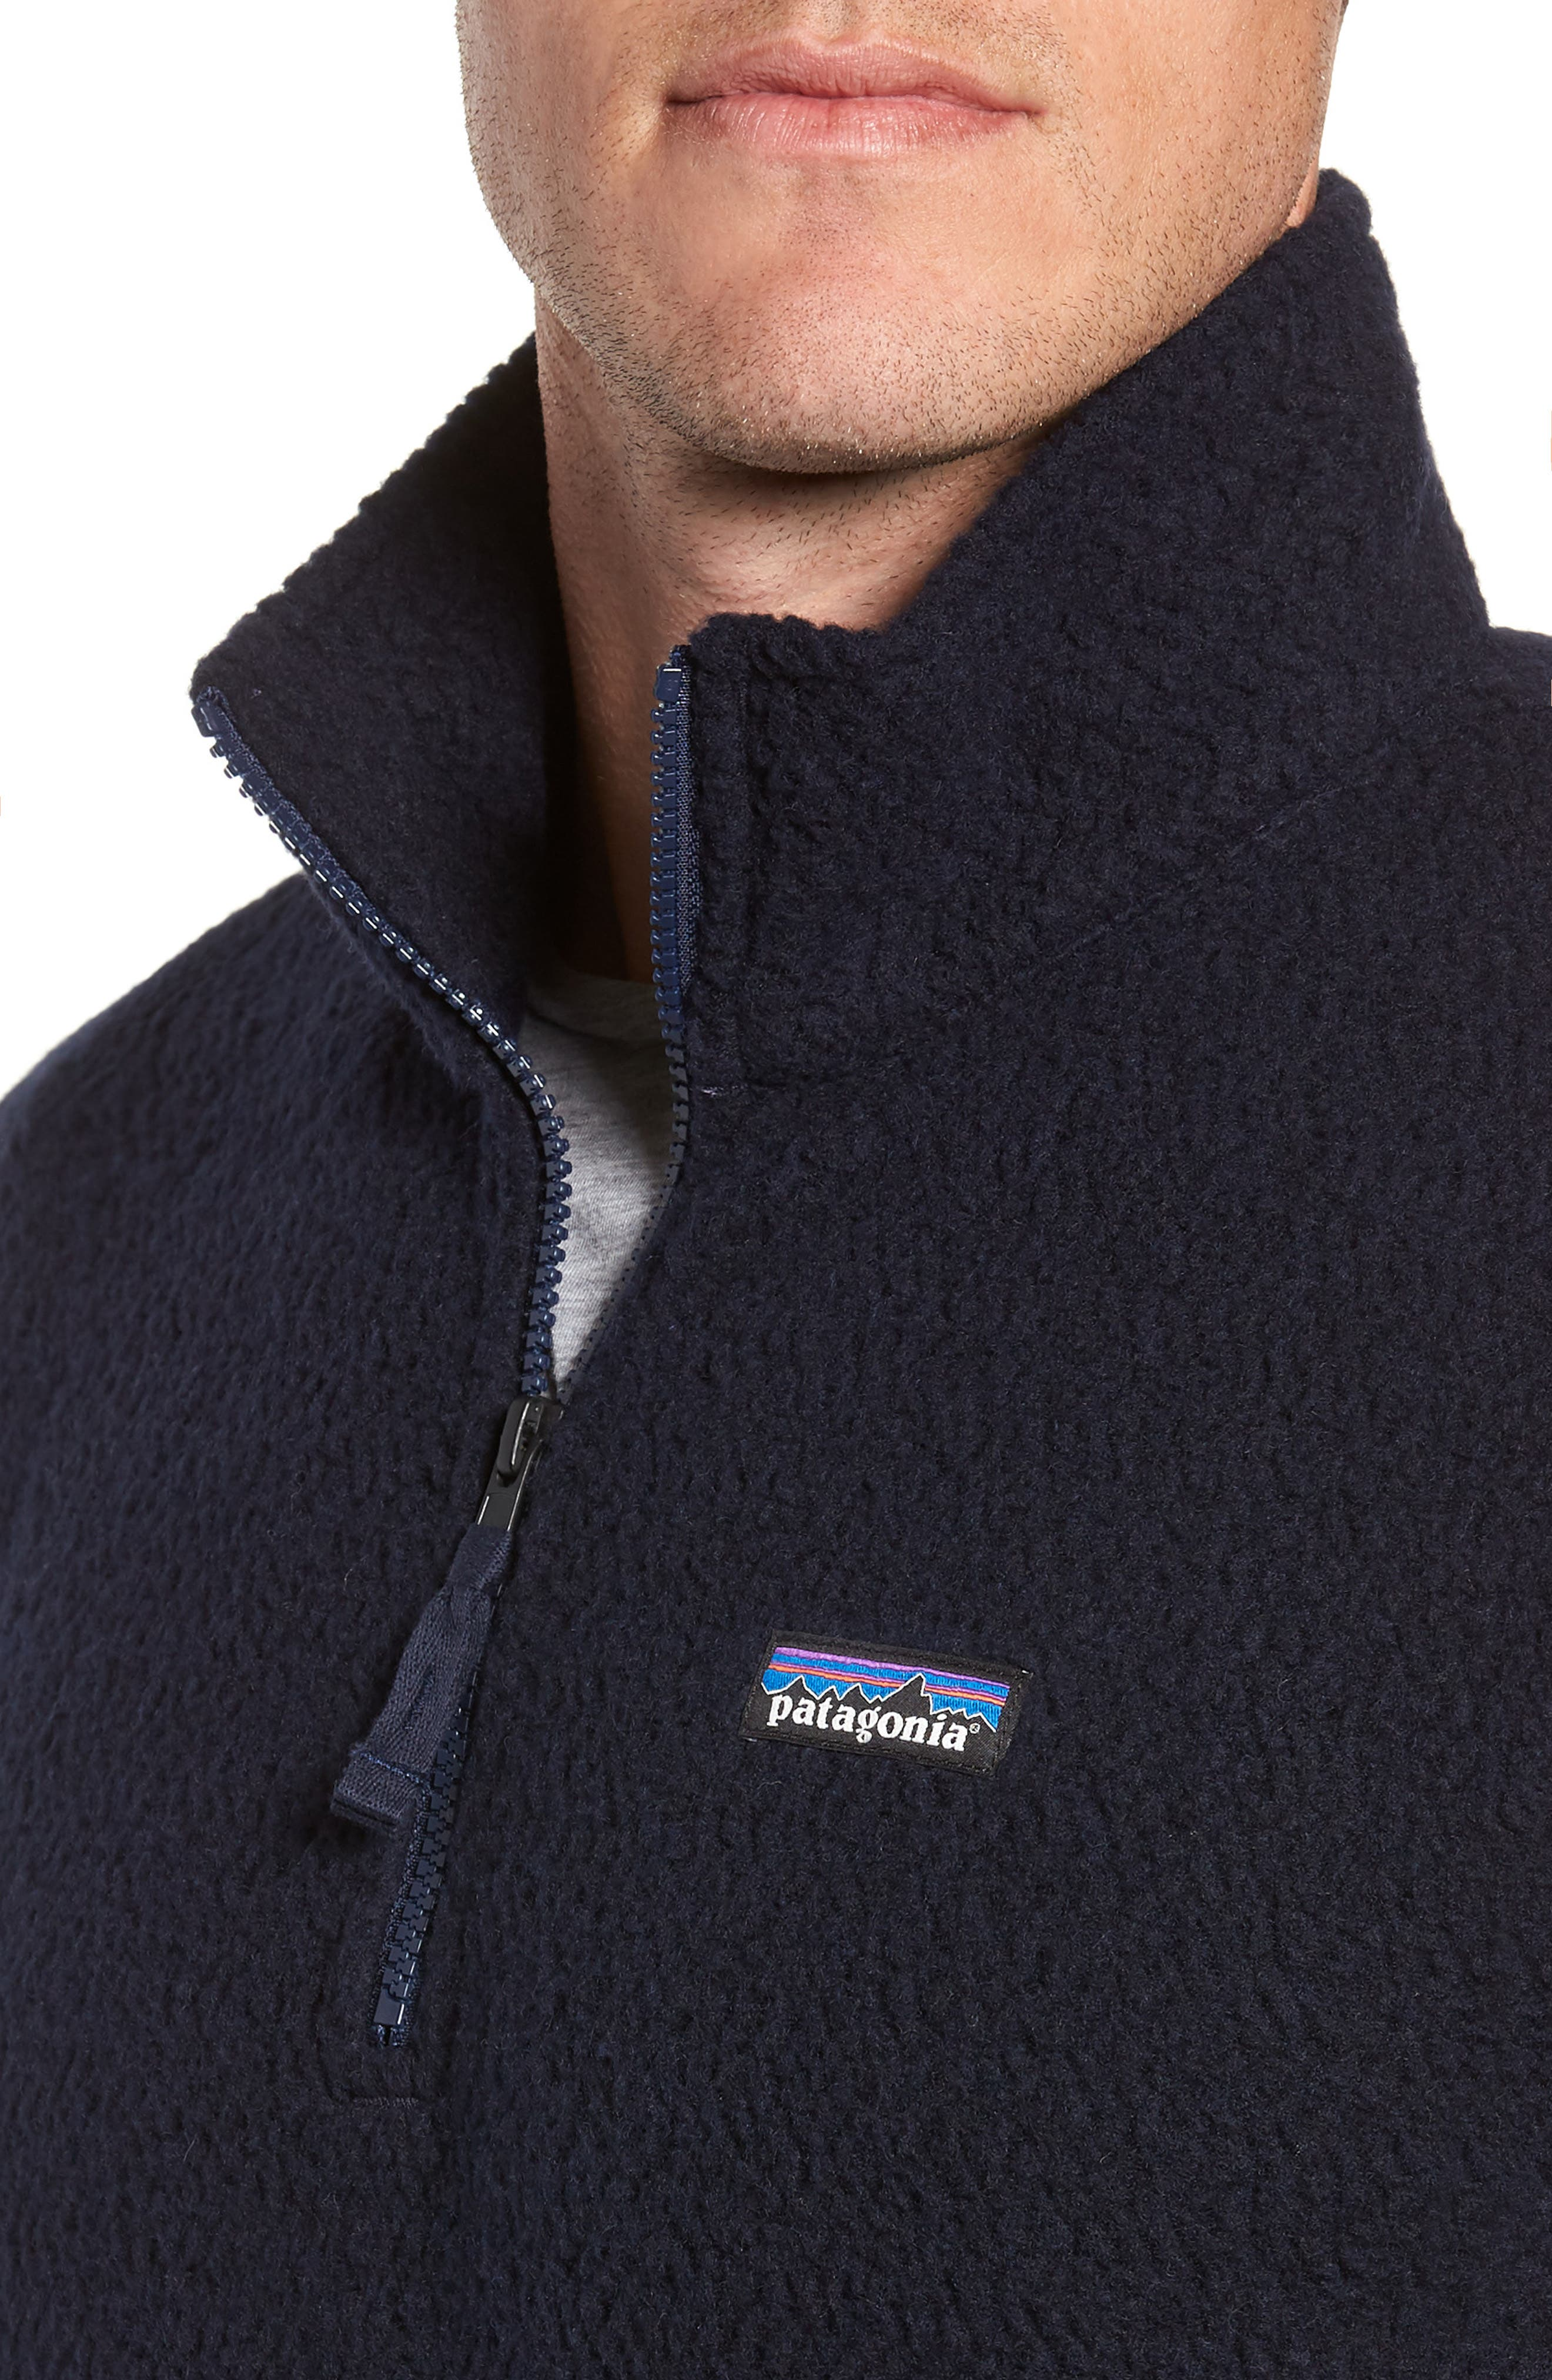 PATAGONIA,                             Woolyester Fleece Quarter Zip Pullover,                             Alternate thumbnail 4, color,                             CLASSIC NAVY